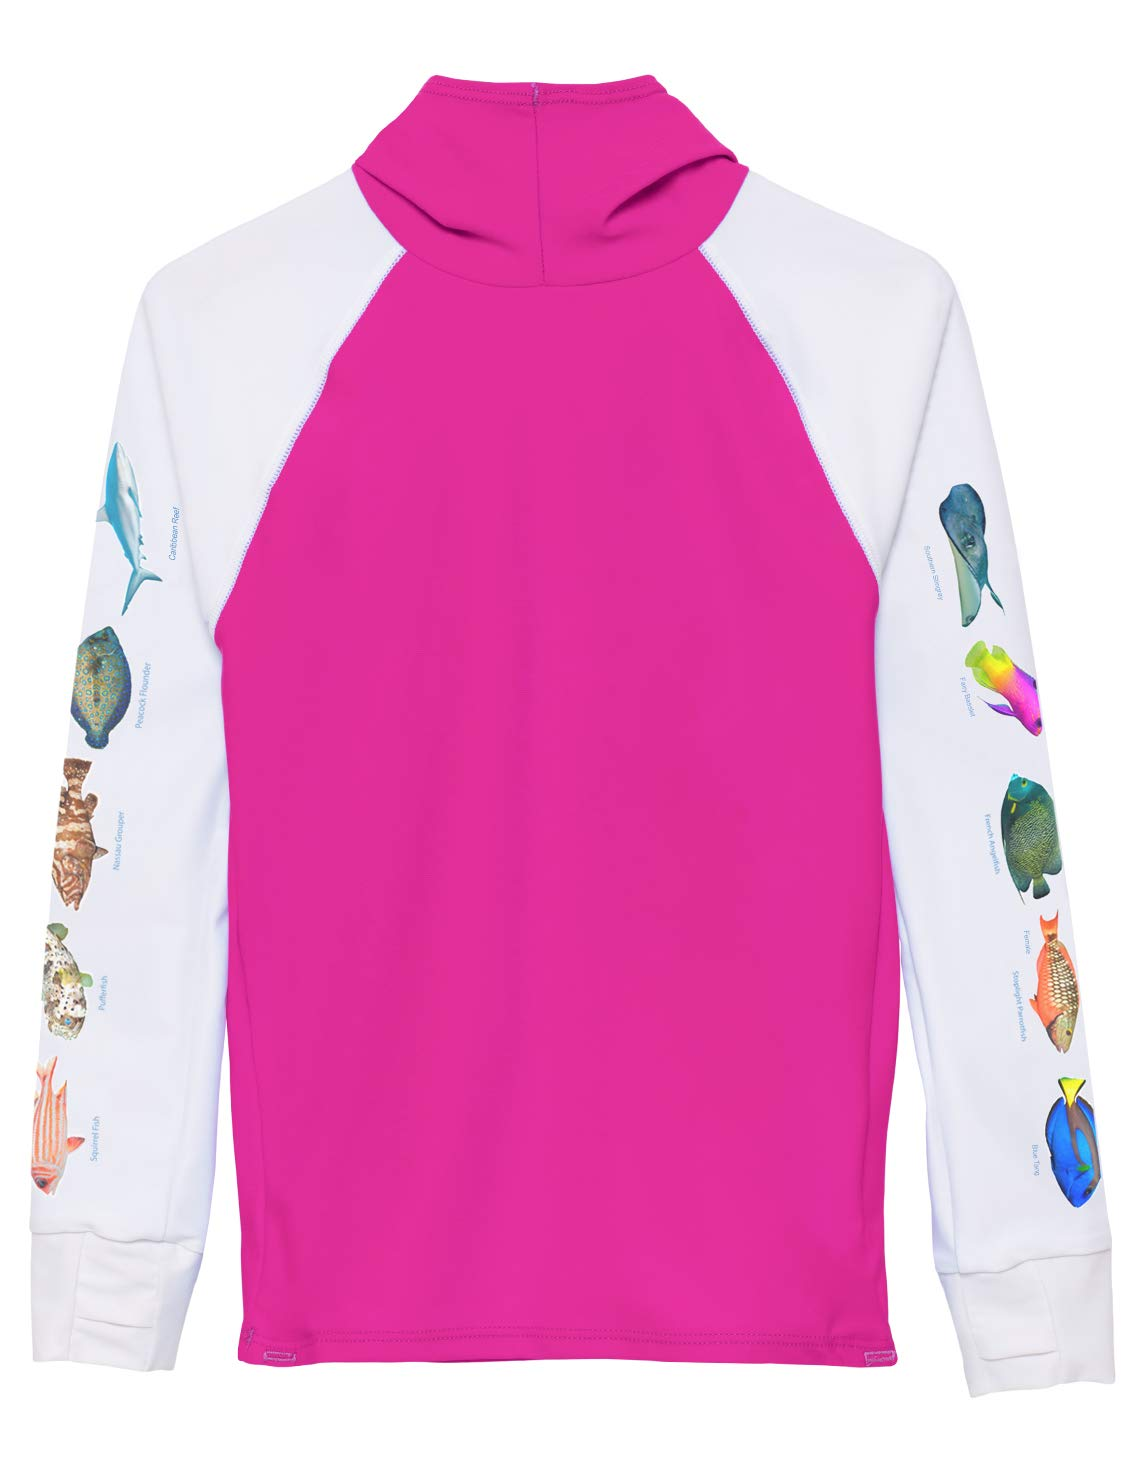 Tuga Girls Hooded Snorkel Rash Guard - Caribbean Fish ID (UPF 50+), Fuchsia, 11/12 yrs by Tuga Sunwear